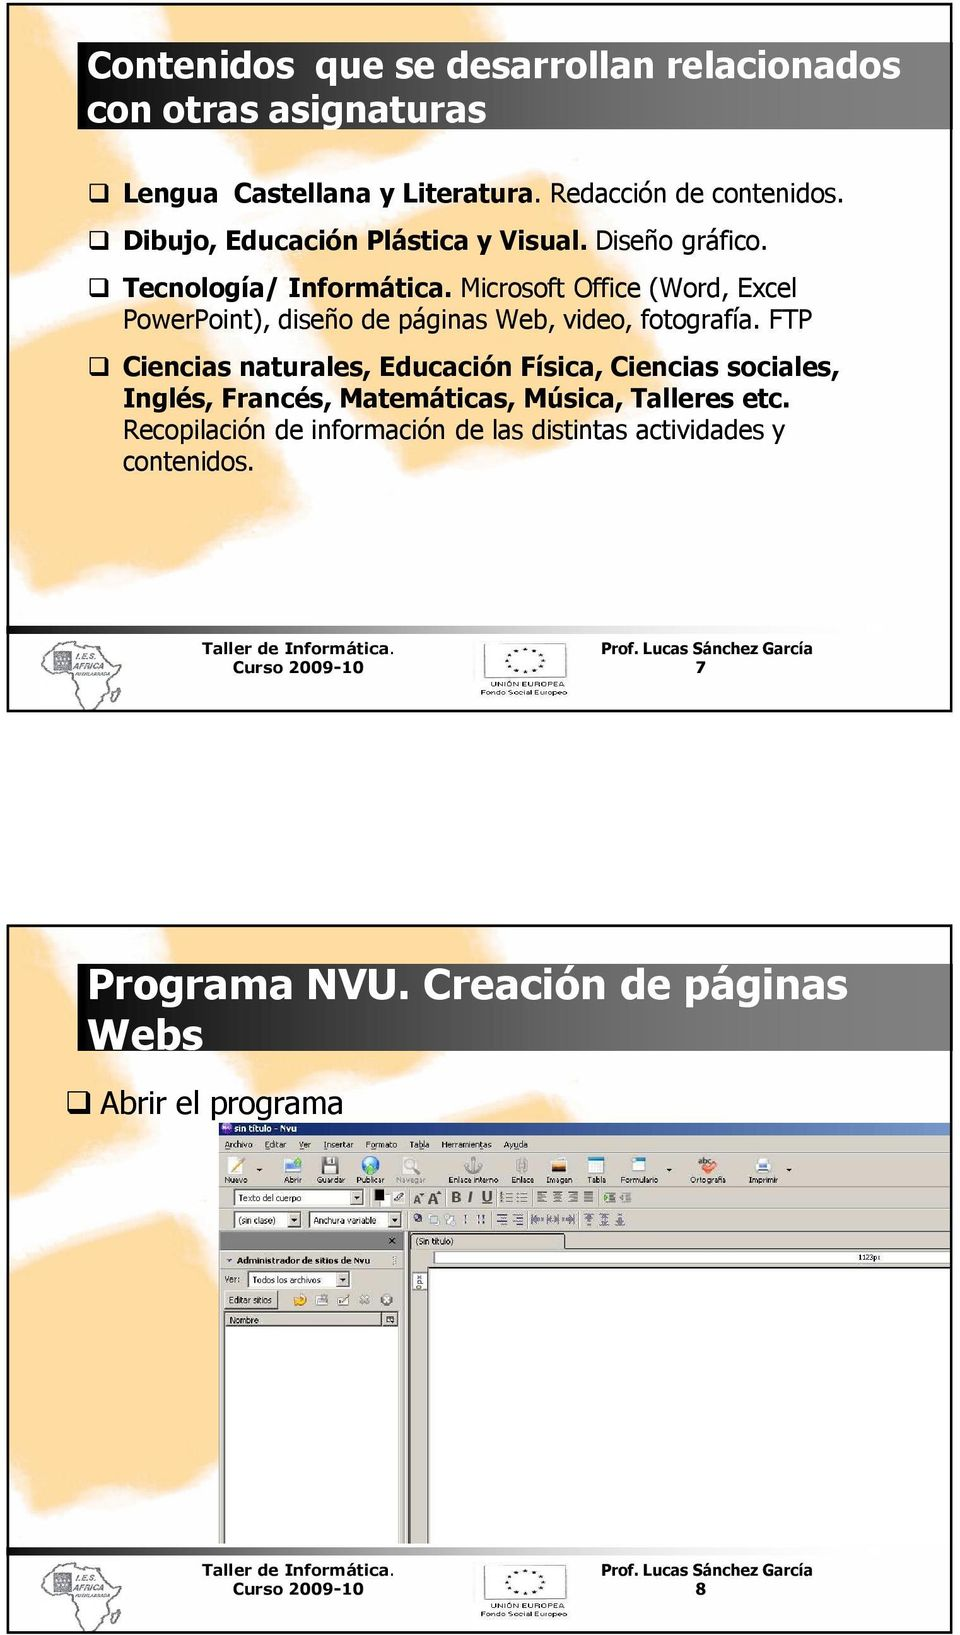 Microsoft Office (Word, Excel PowerPoint), diseño de páginas Web, video, fotografía.